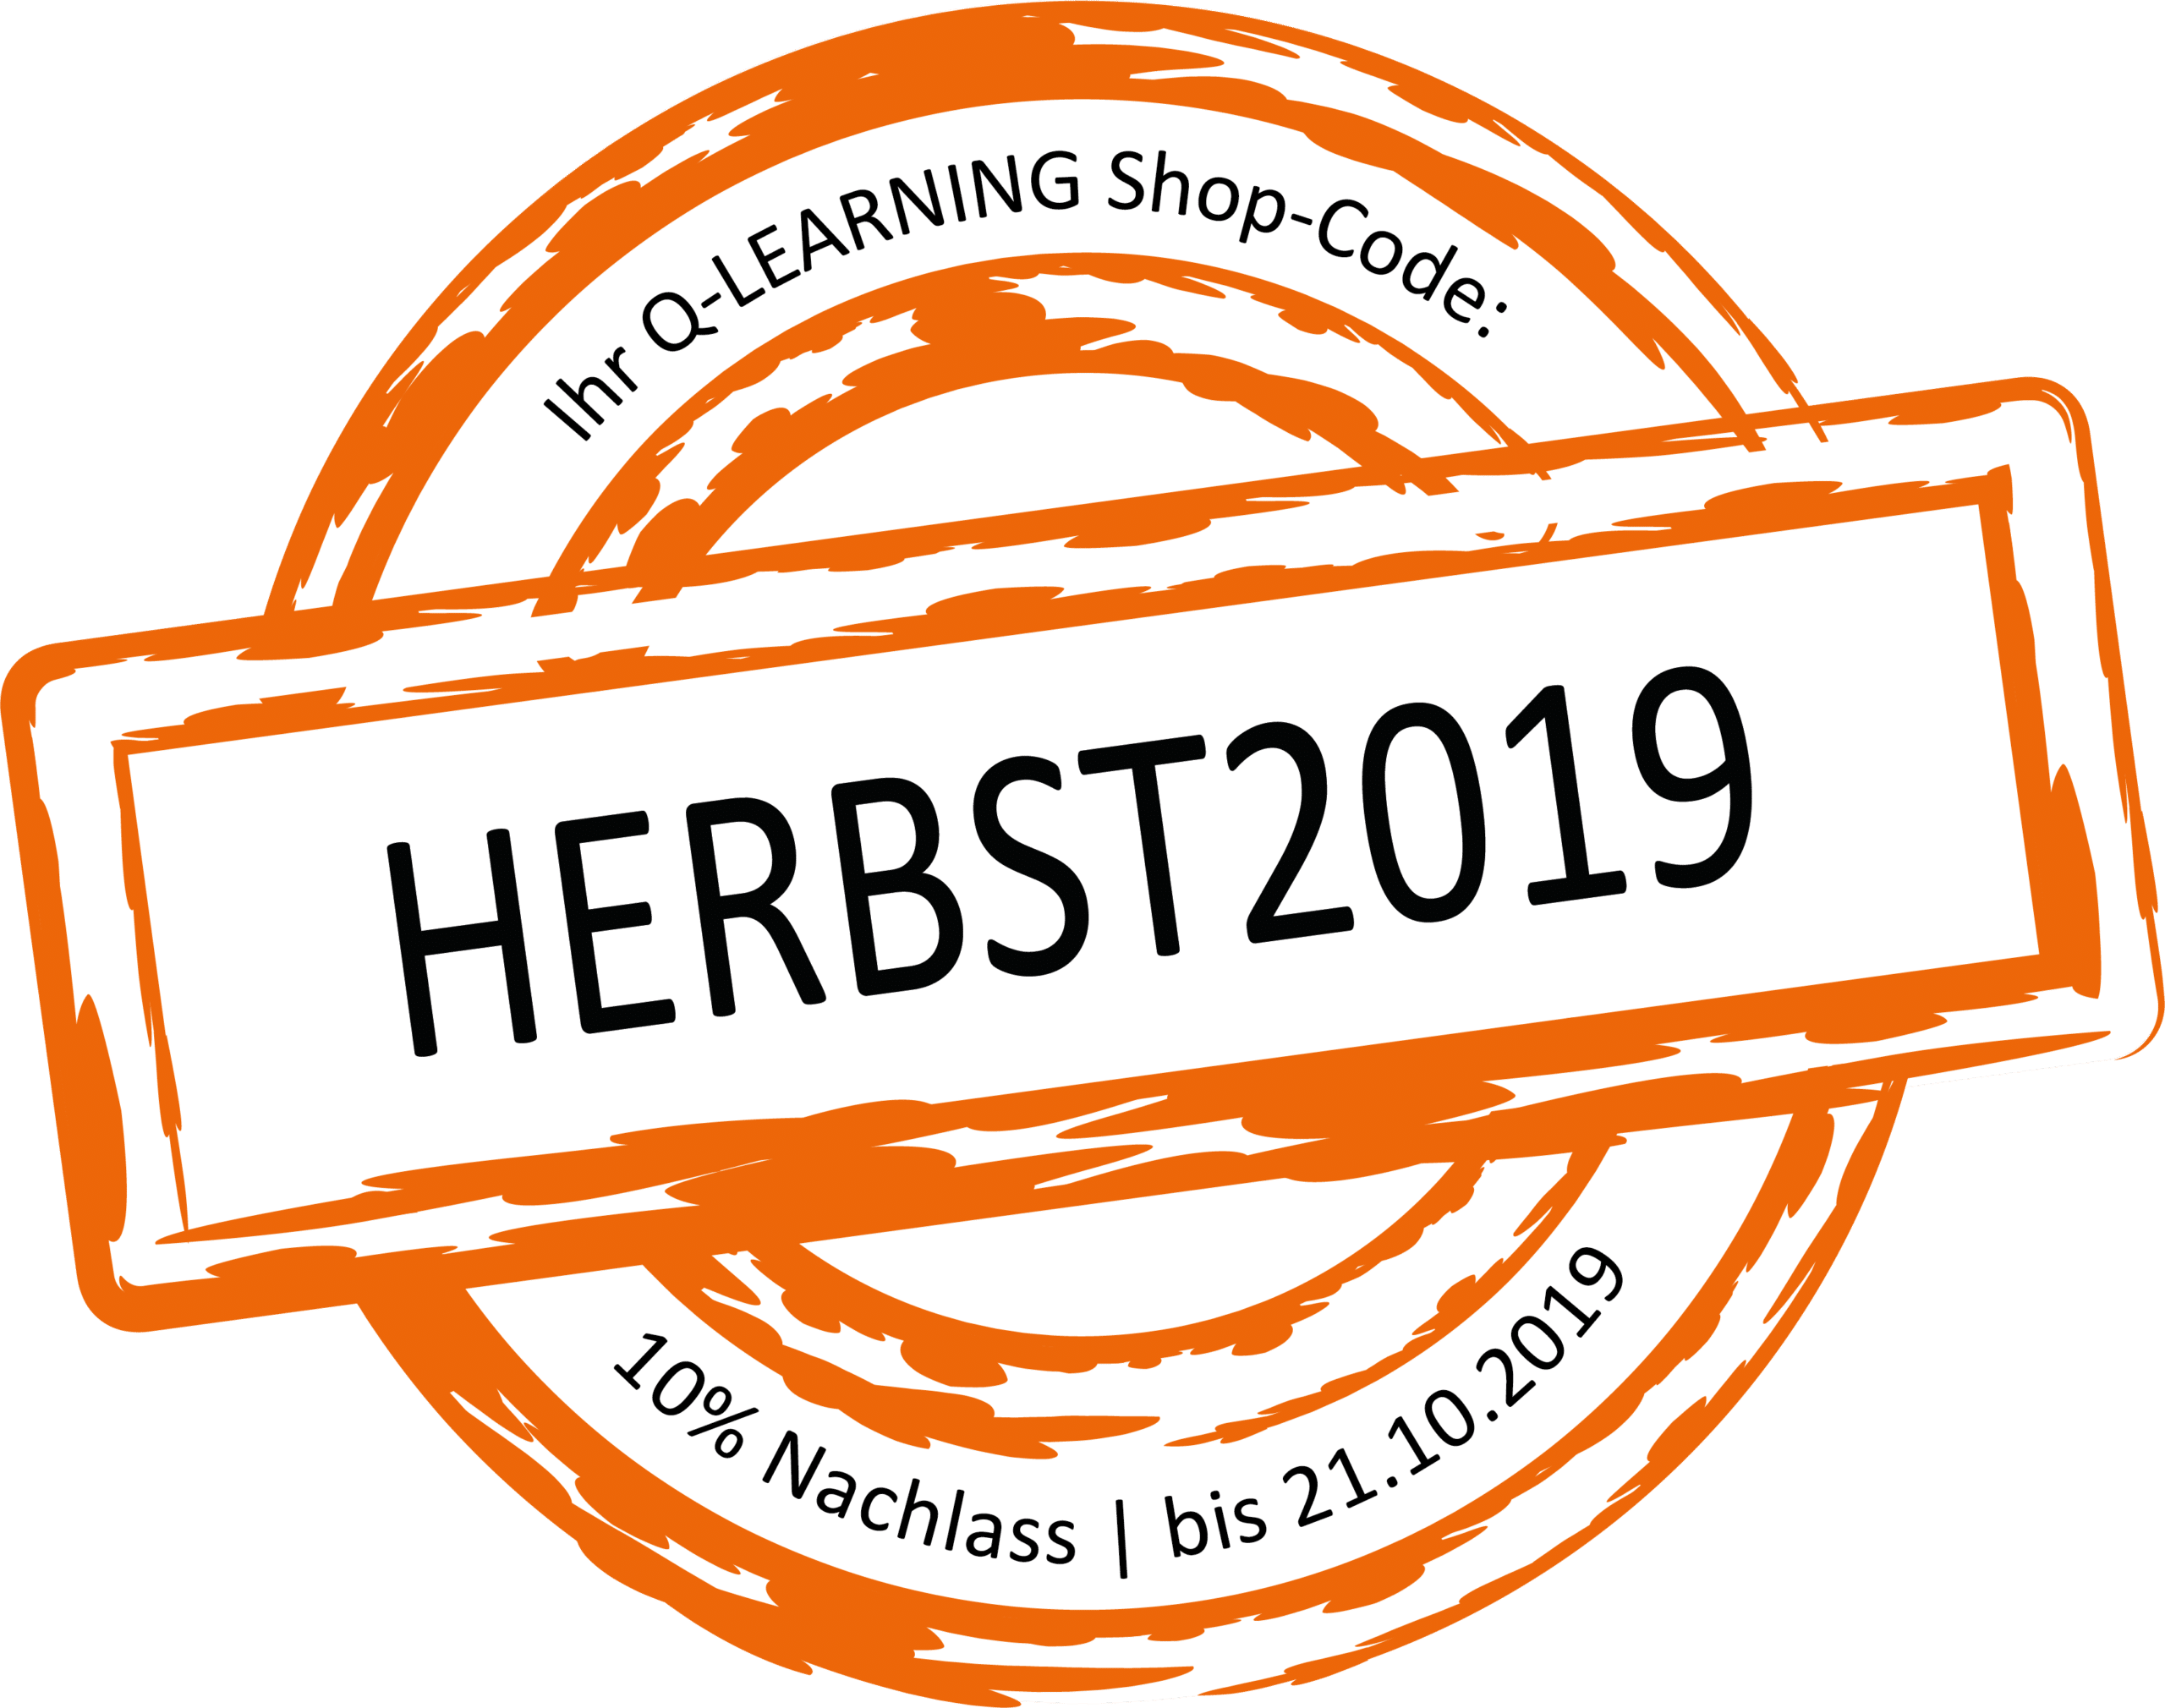 Q-LEARNING Herbstaktion 2019